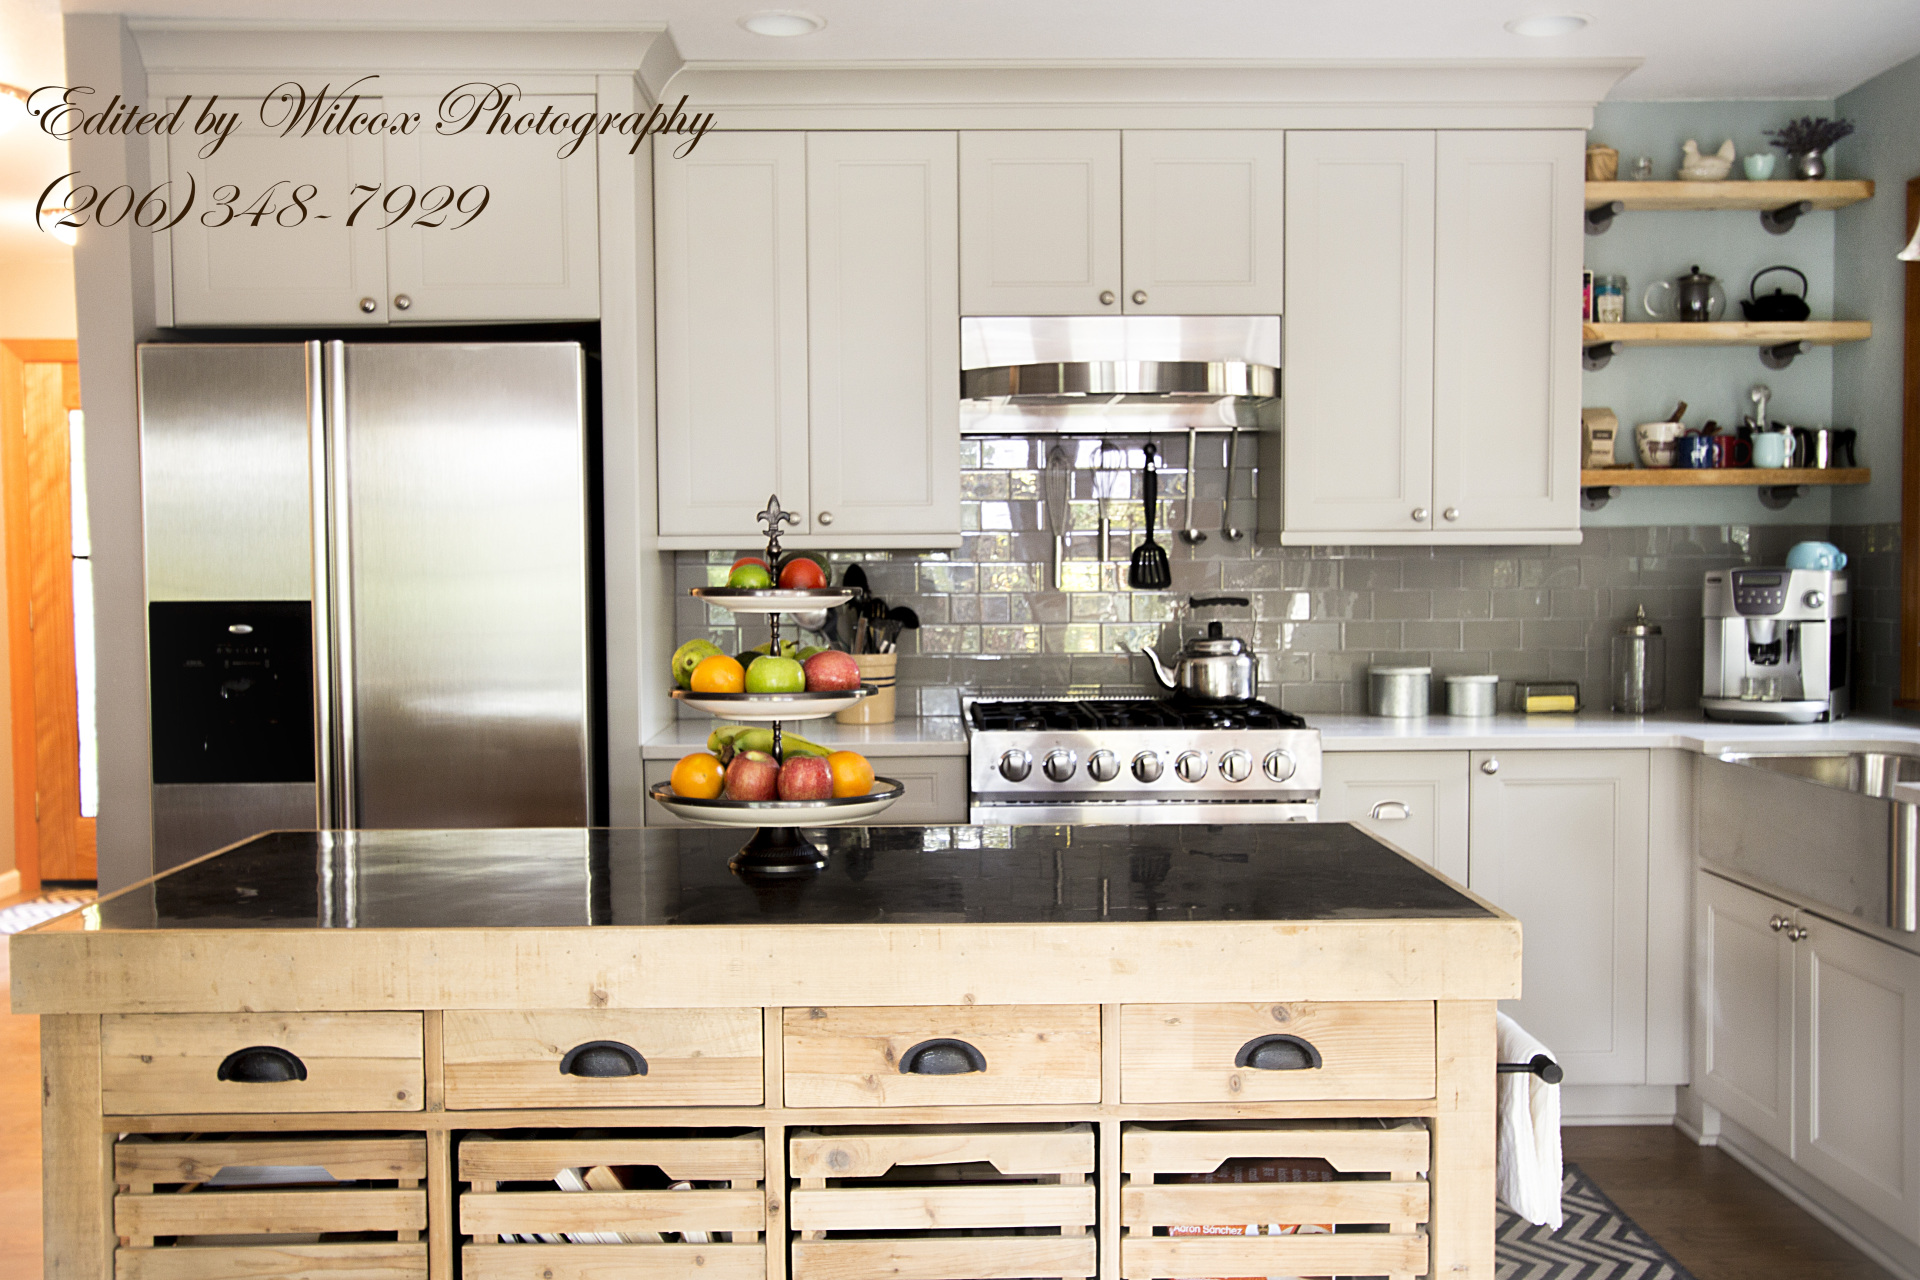 Rayburn Kitchen - Tatiana Hisel Interior Design